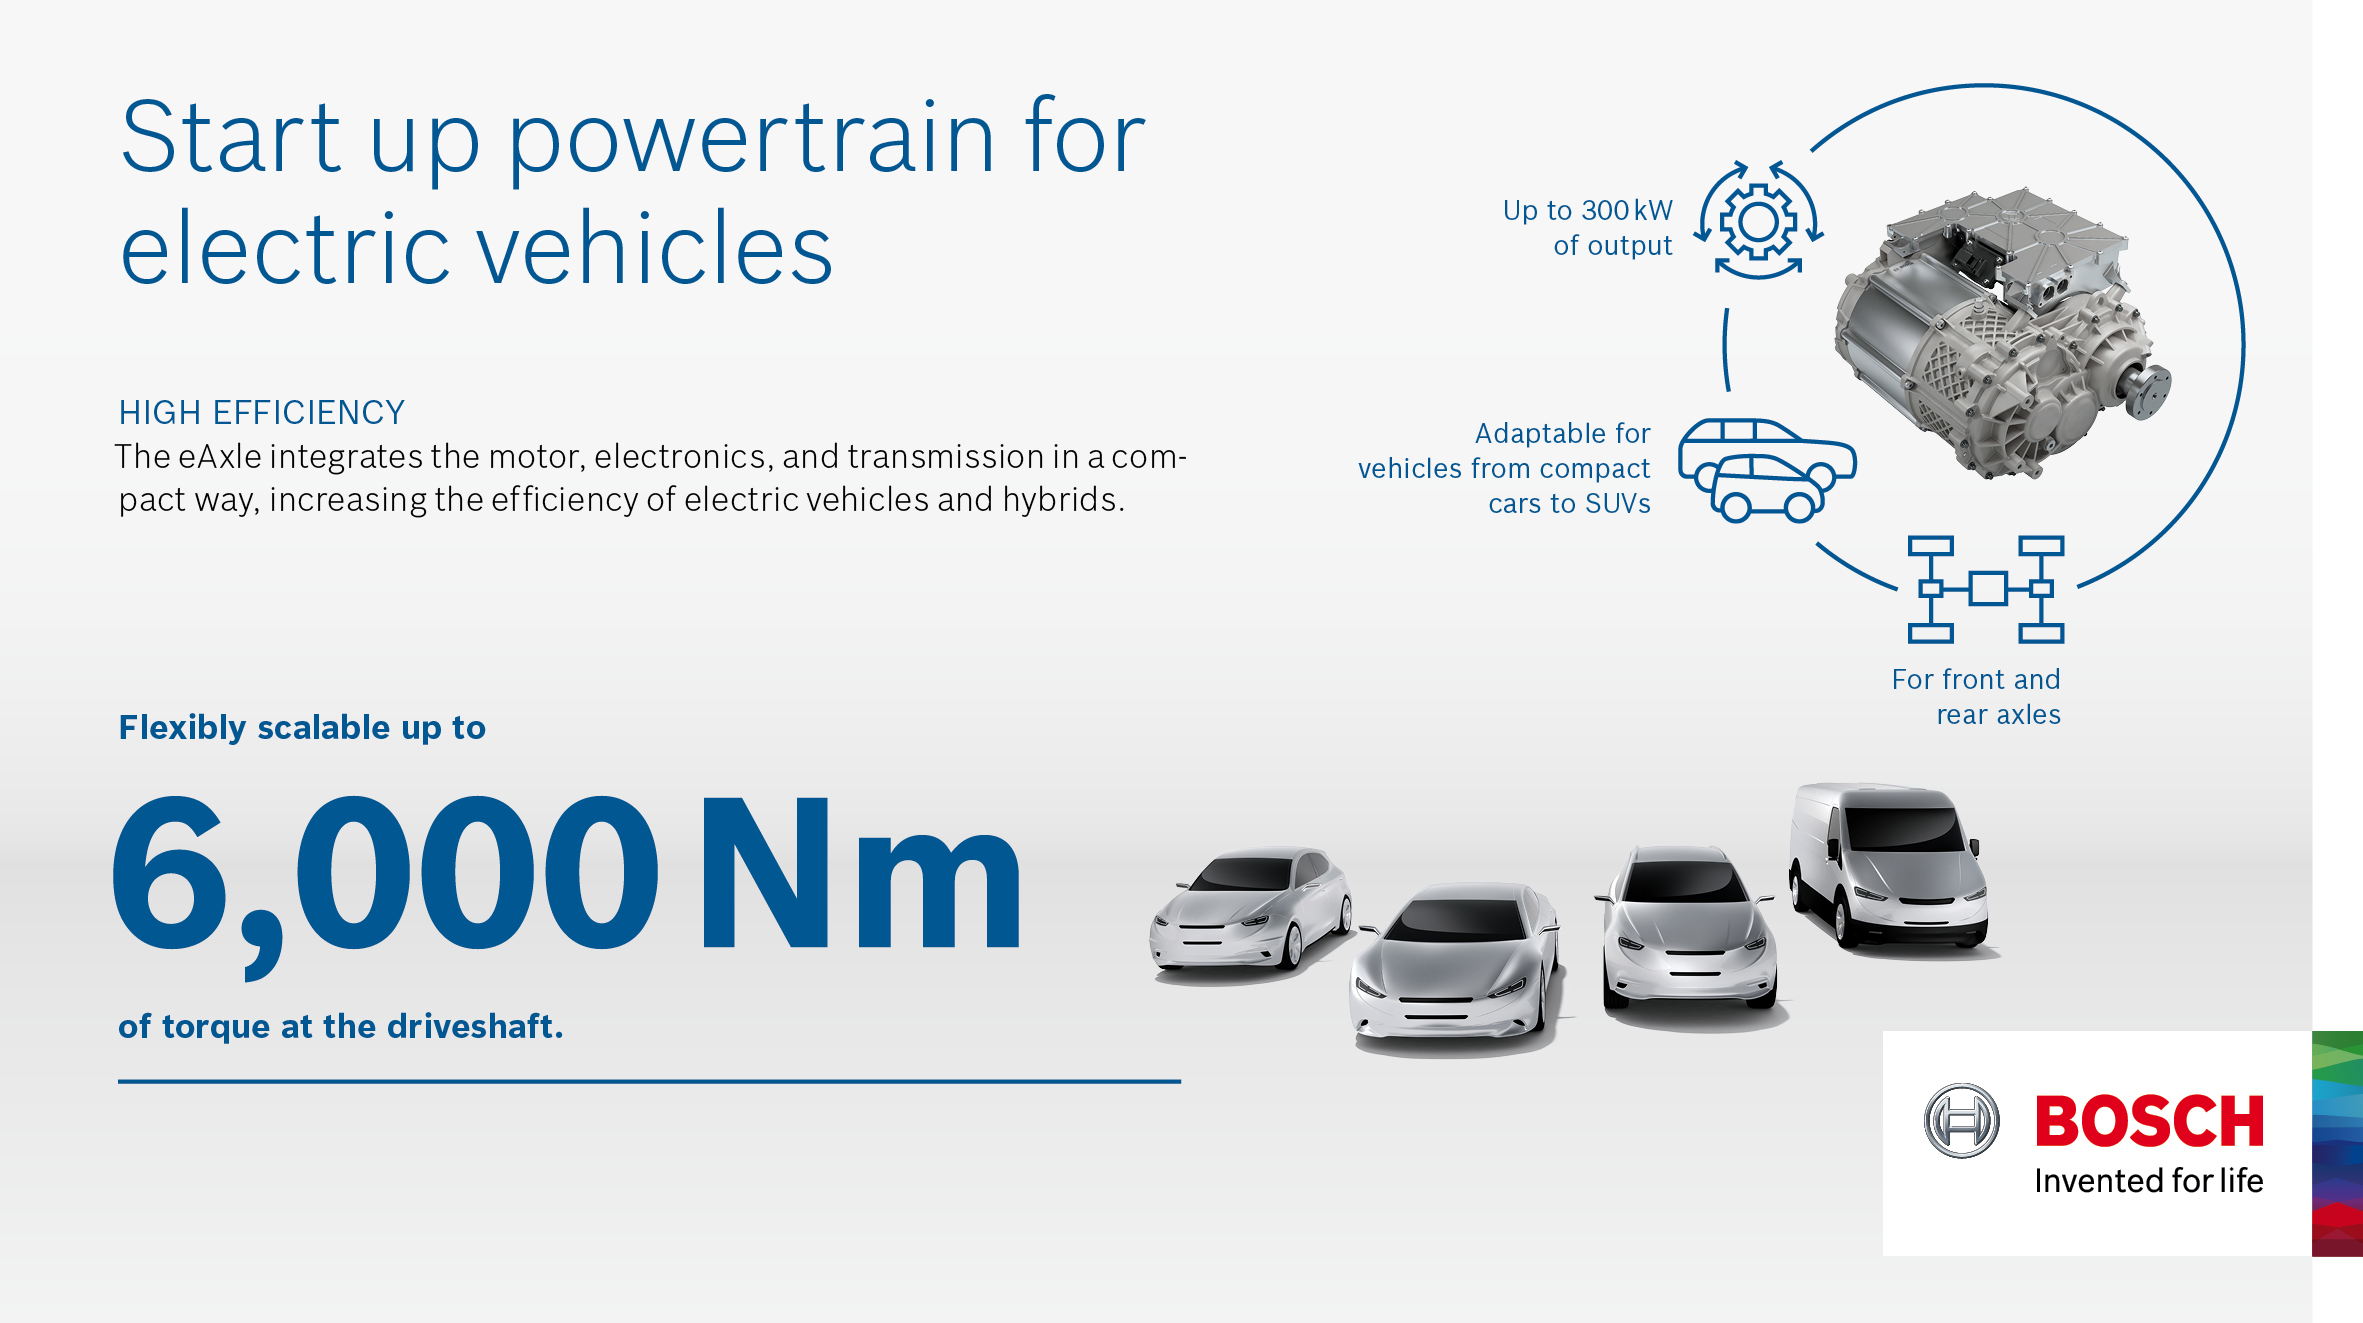 The Start Up Powertrain For Electric Cars The Bosch E: electric motor solutions